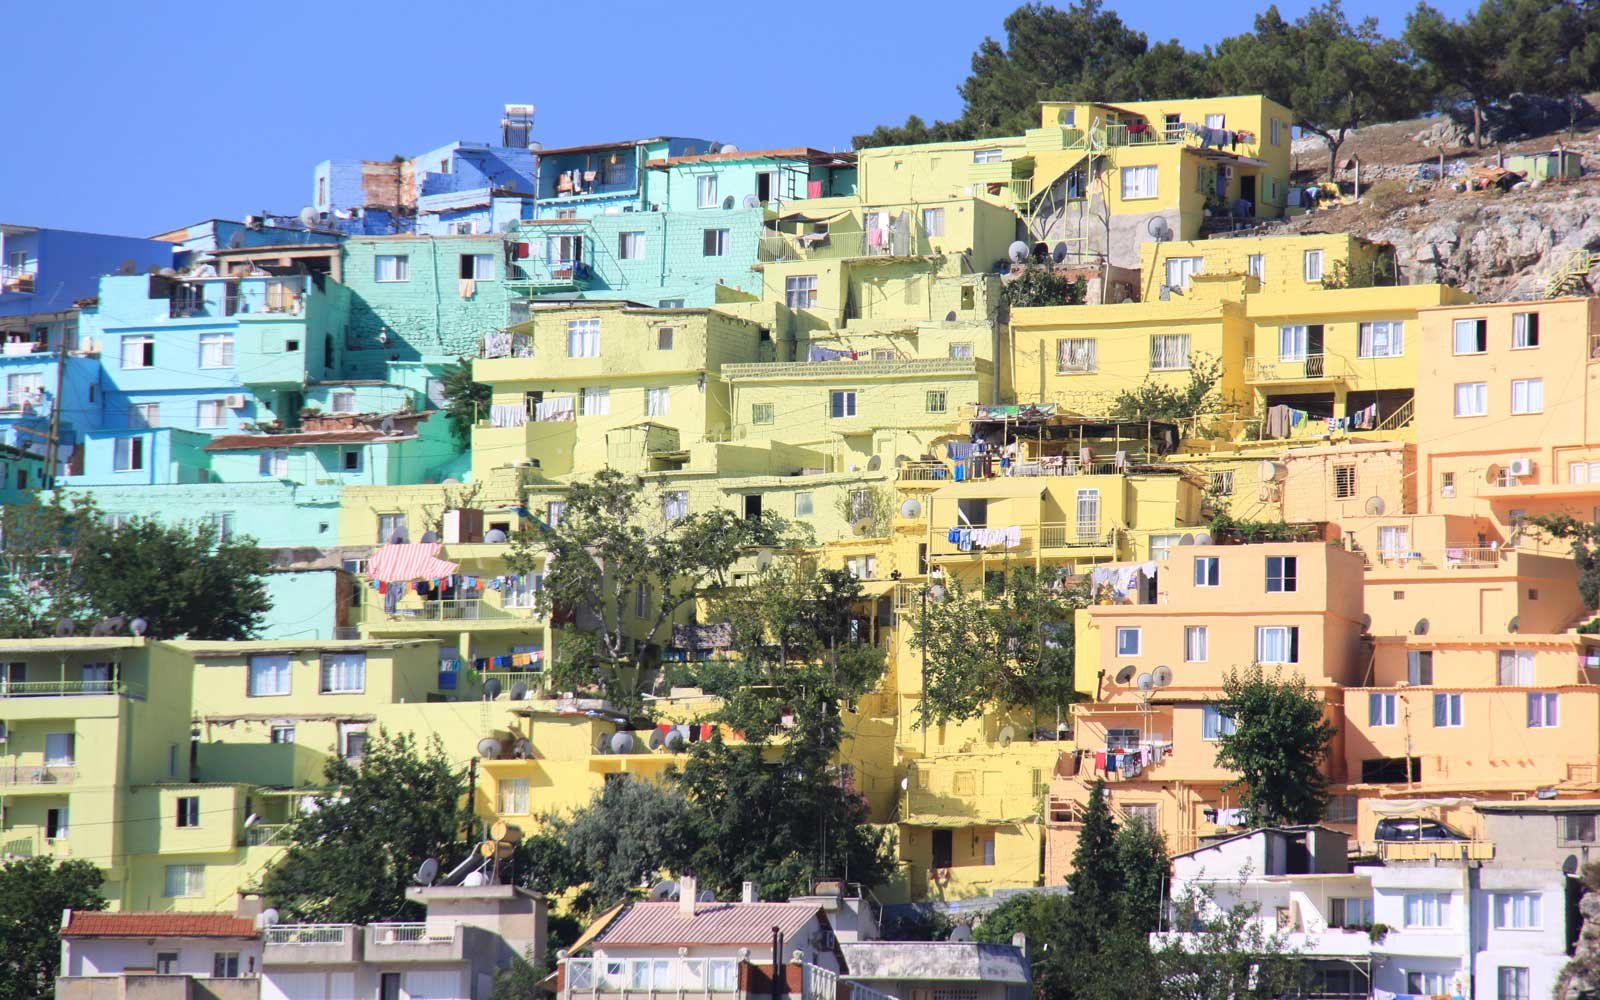 Multi-coloured painted houses on the hillside overlooking the town and port at Kusadasi, Aydin Province, TURKEY